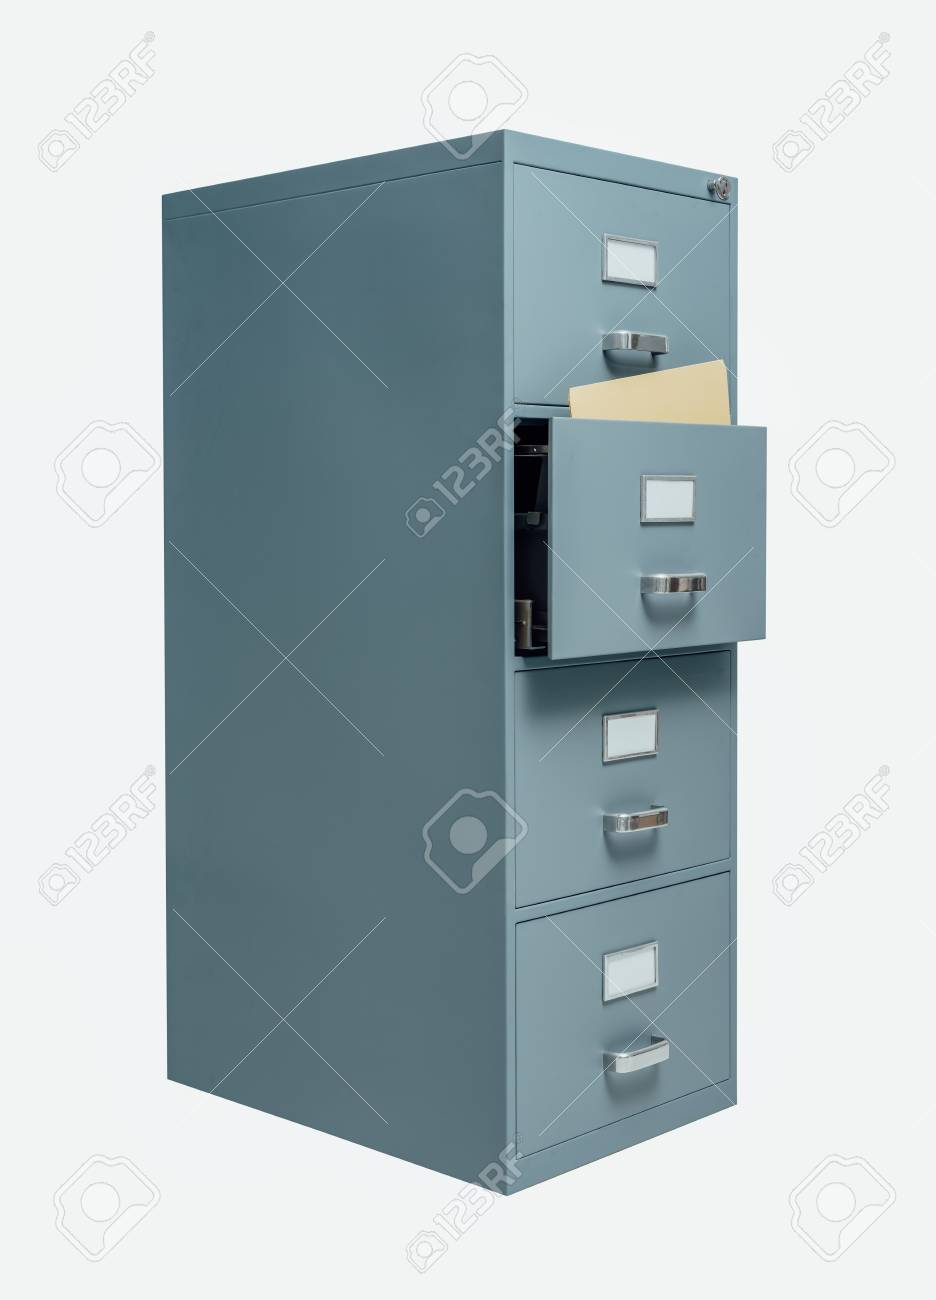 Filing cabinet with open drawer on white background, data storage and administration concept - 85506261